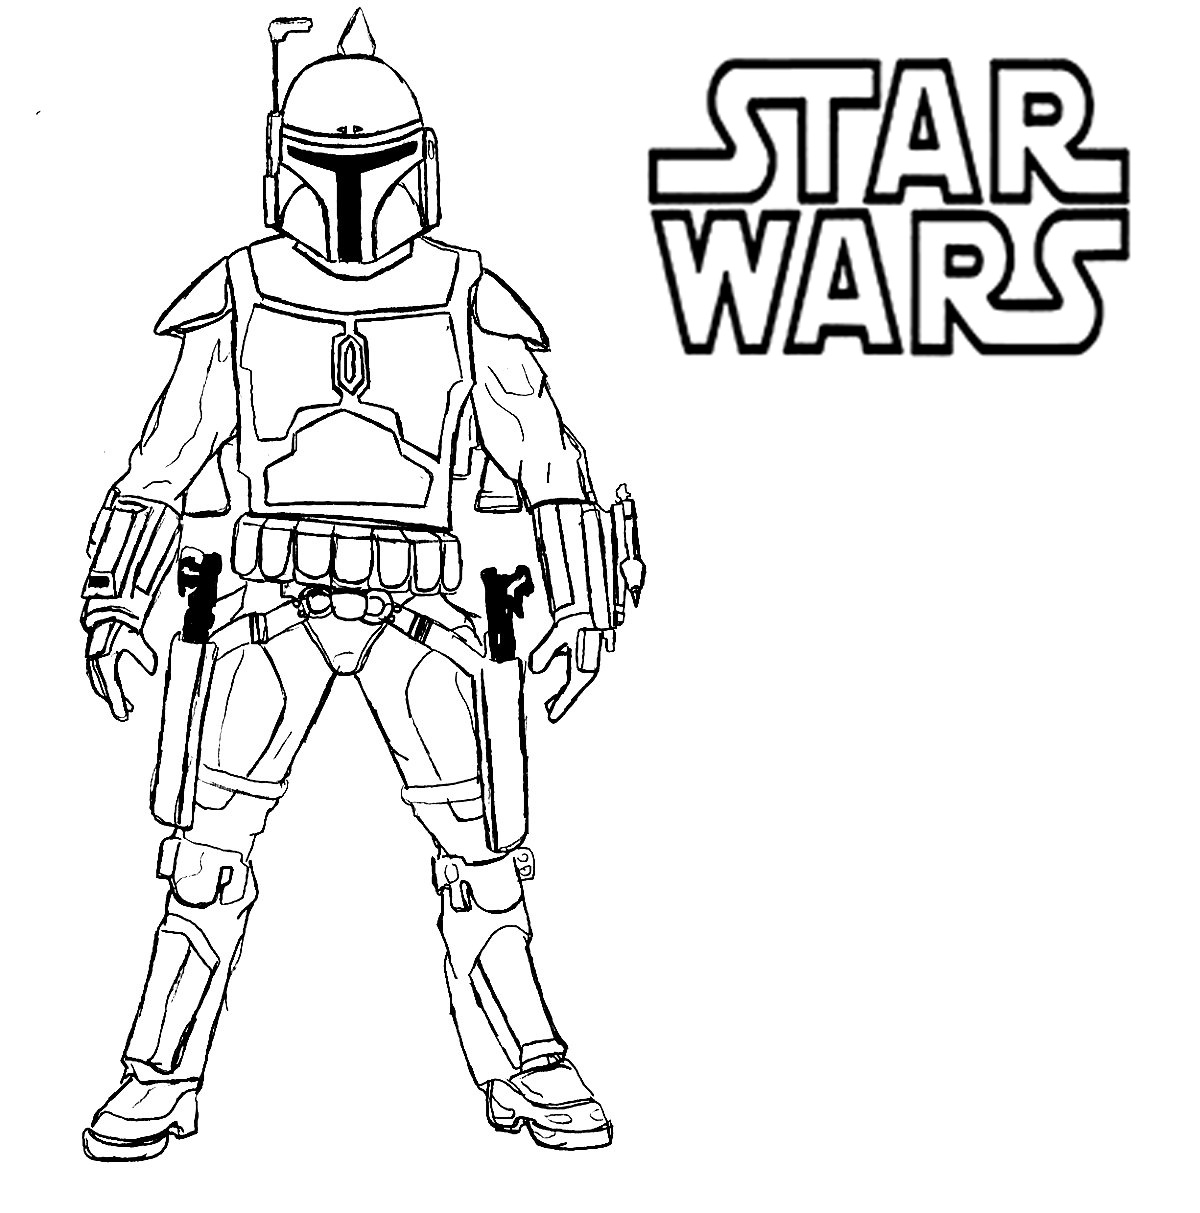 star wars free coloring pages star wars coloring pages 2018 dr odd wars pages coloring star free